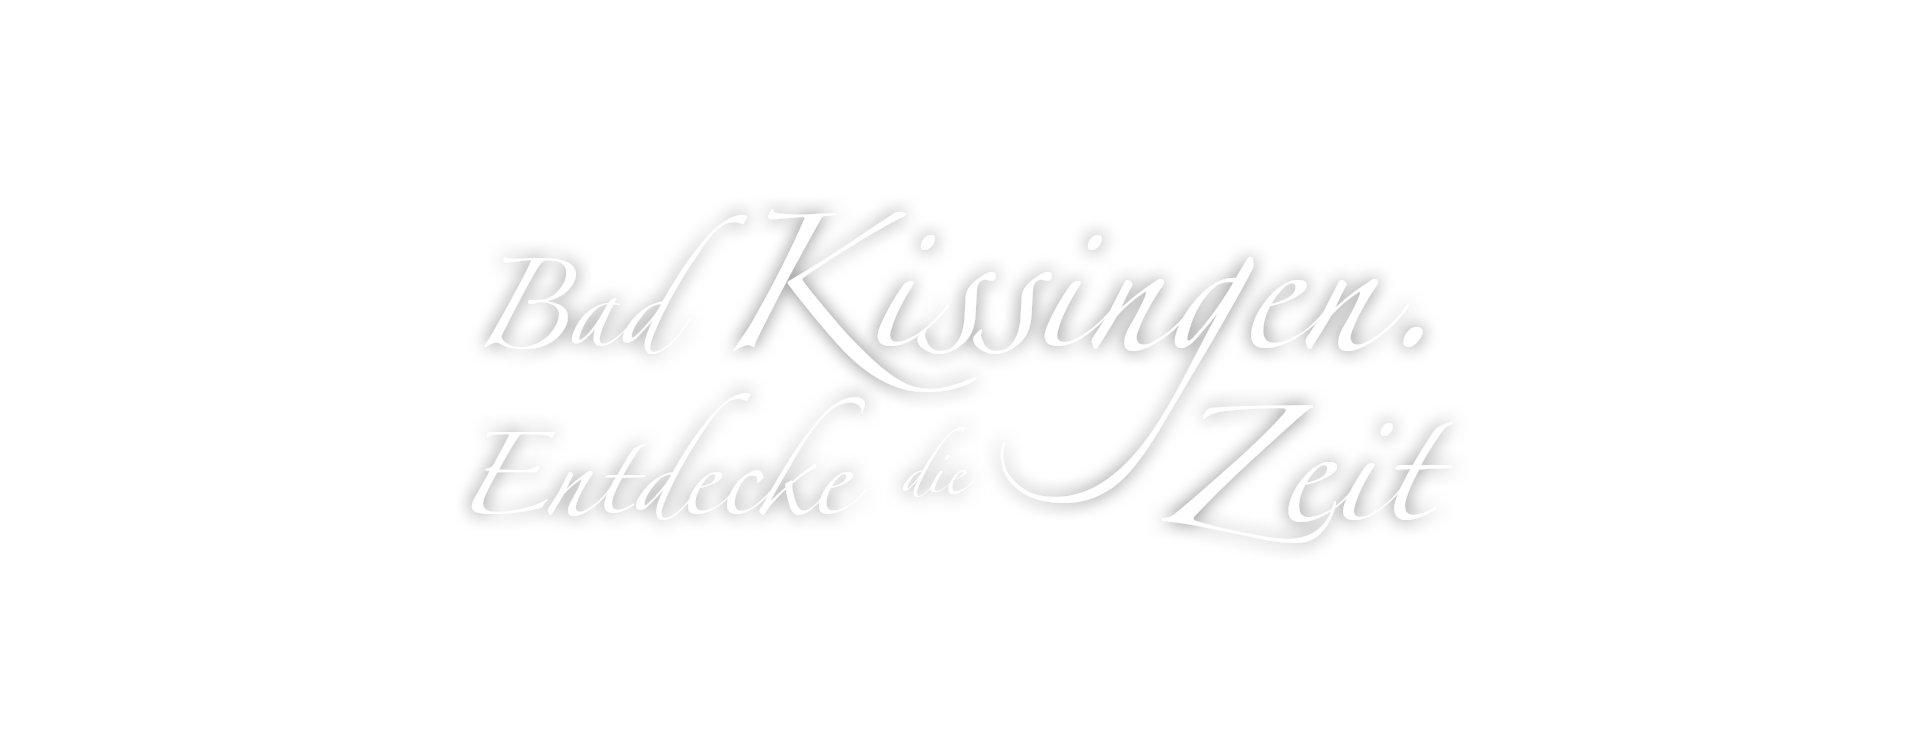 Claim Bad Kissingen 1